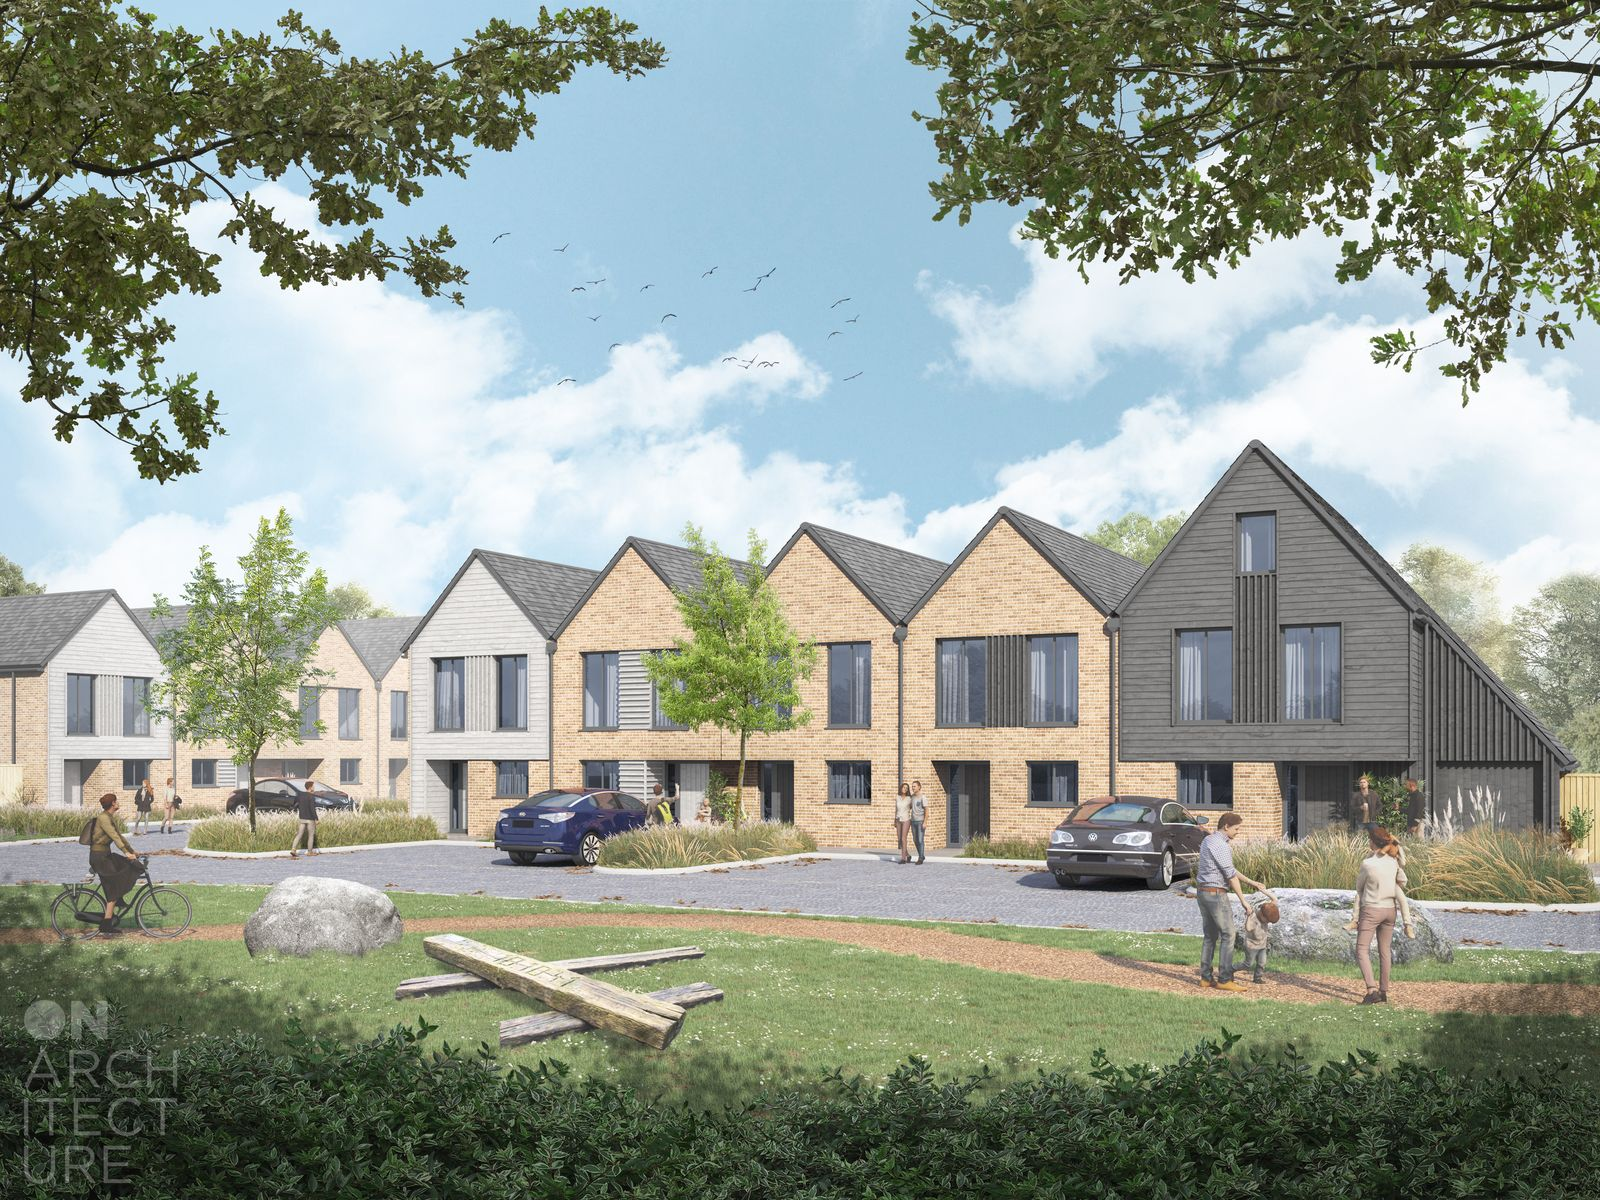 SOUTHERN GROVE UNVEILS £18MILLION SCHEME THAT WILL CREATE DOZENS OF  FAMILY HOMES ON THE PICTURESQUE KENT COAST